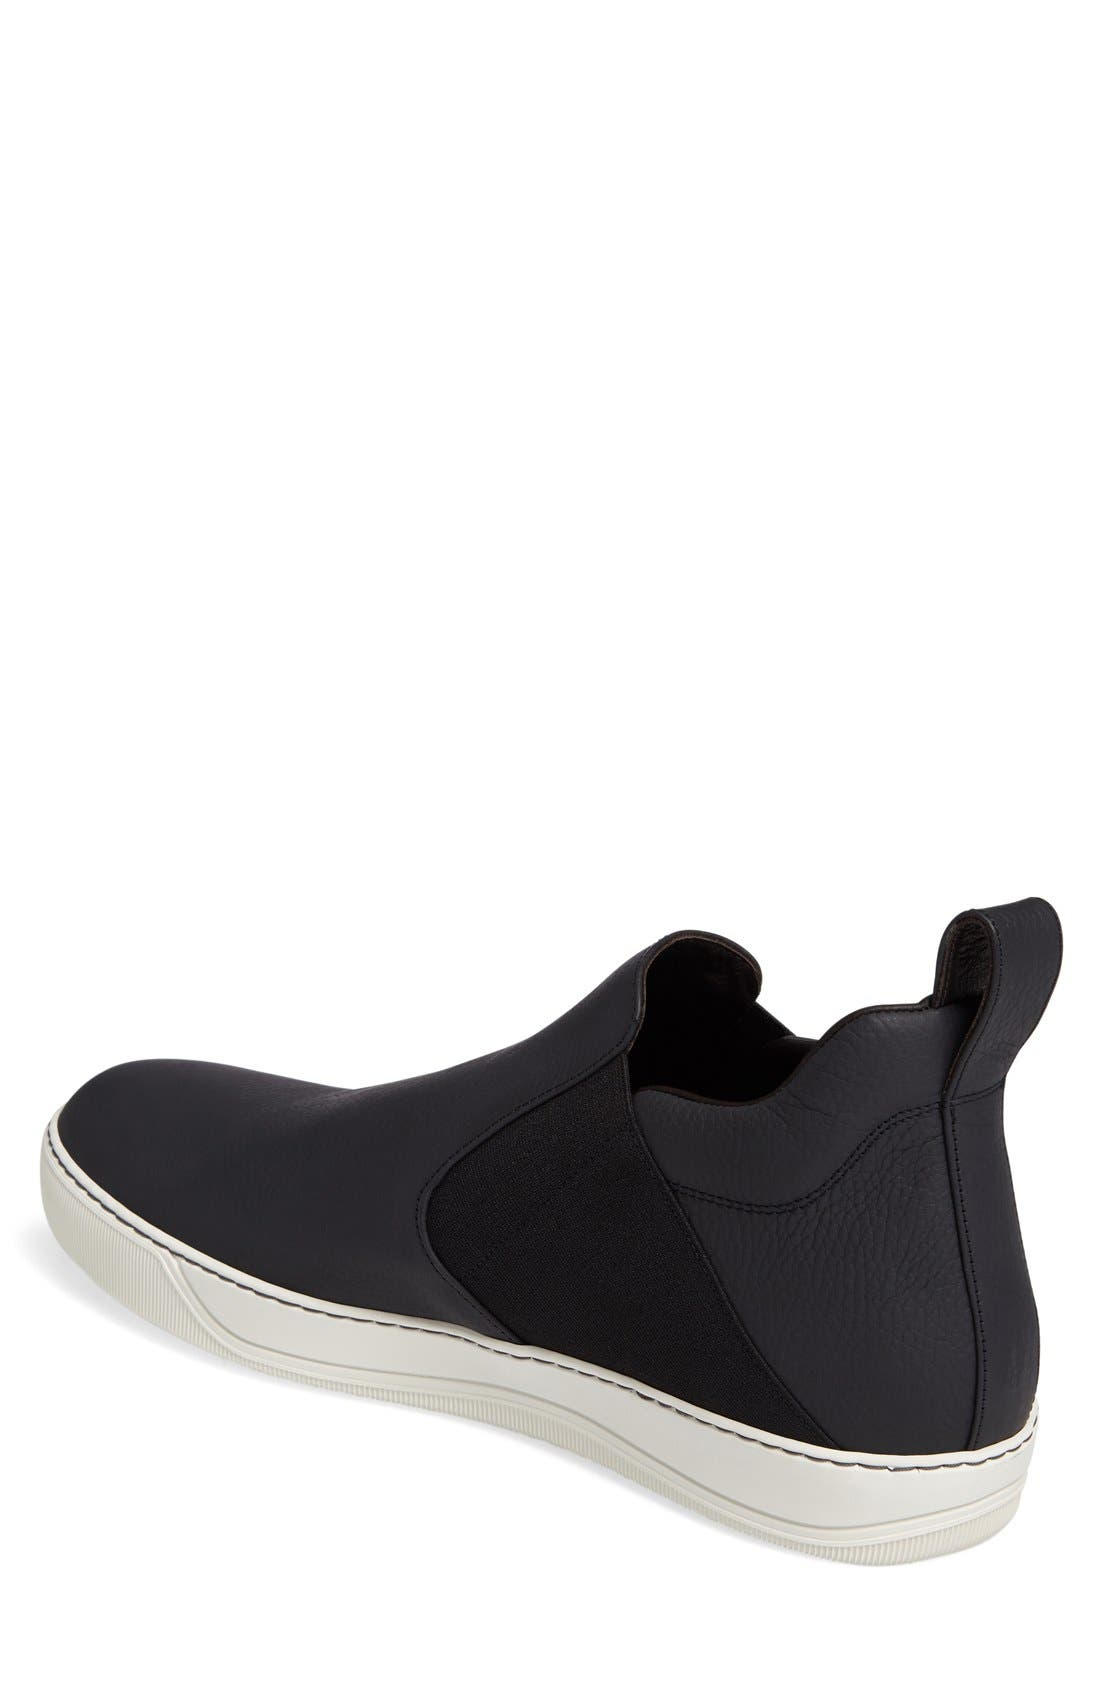 Alternate Image 2  - Lanvin Mid Slip-On Sneaker (Men)